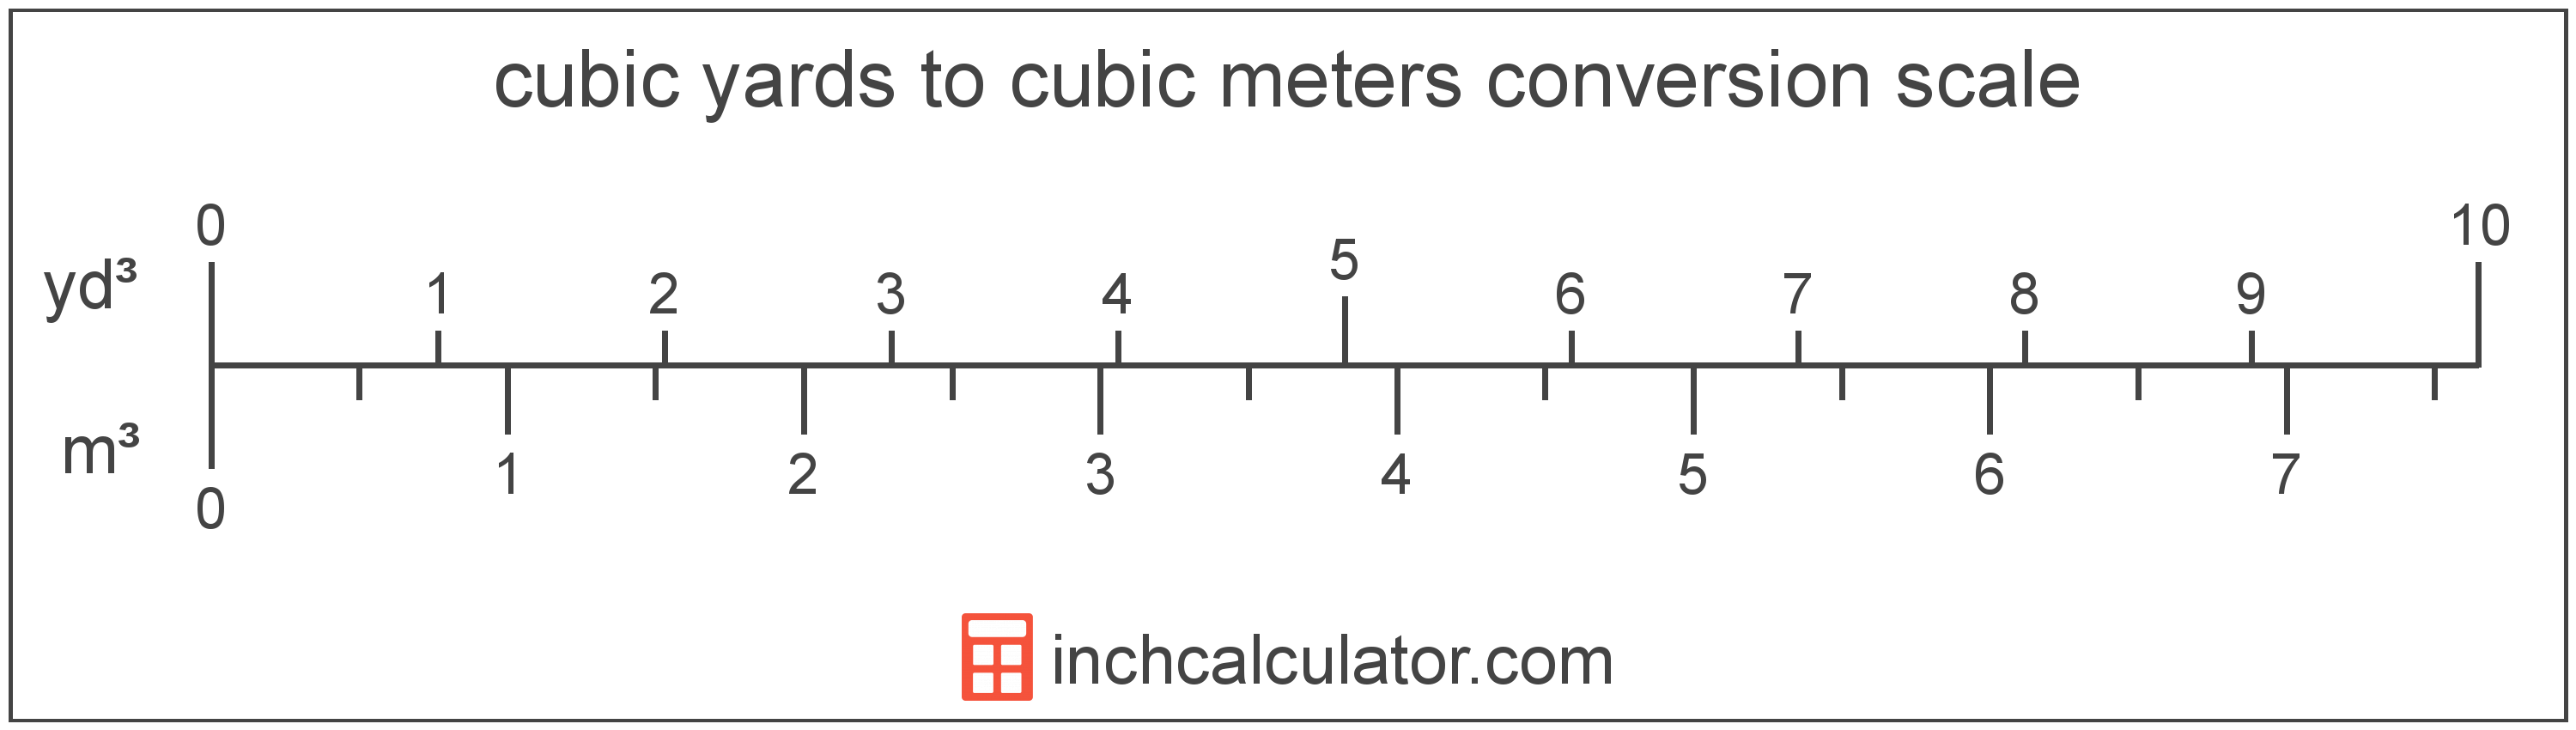 conversion scale showing cubic yards and equivalent cubic meters volume values